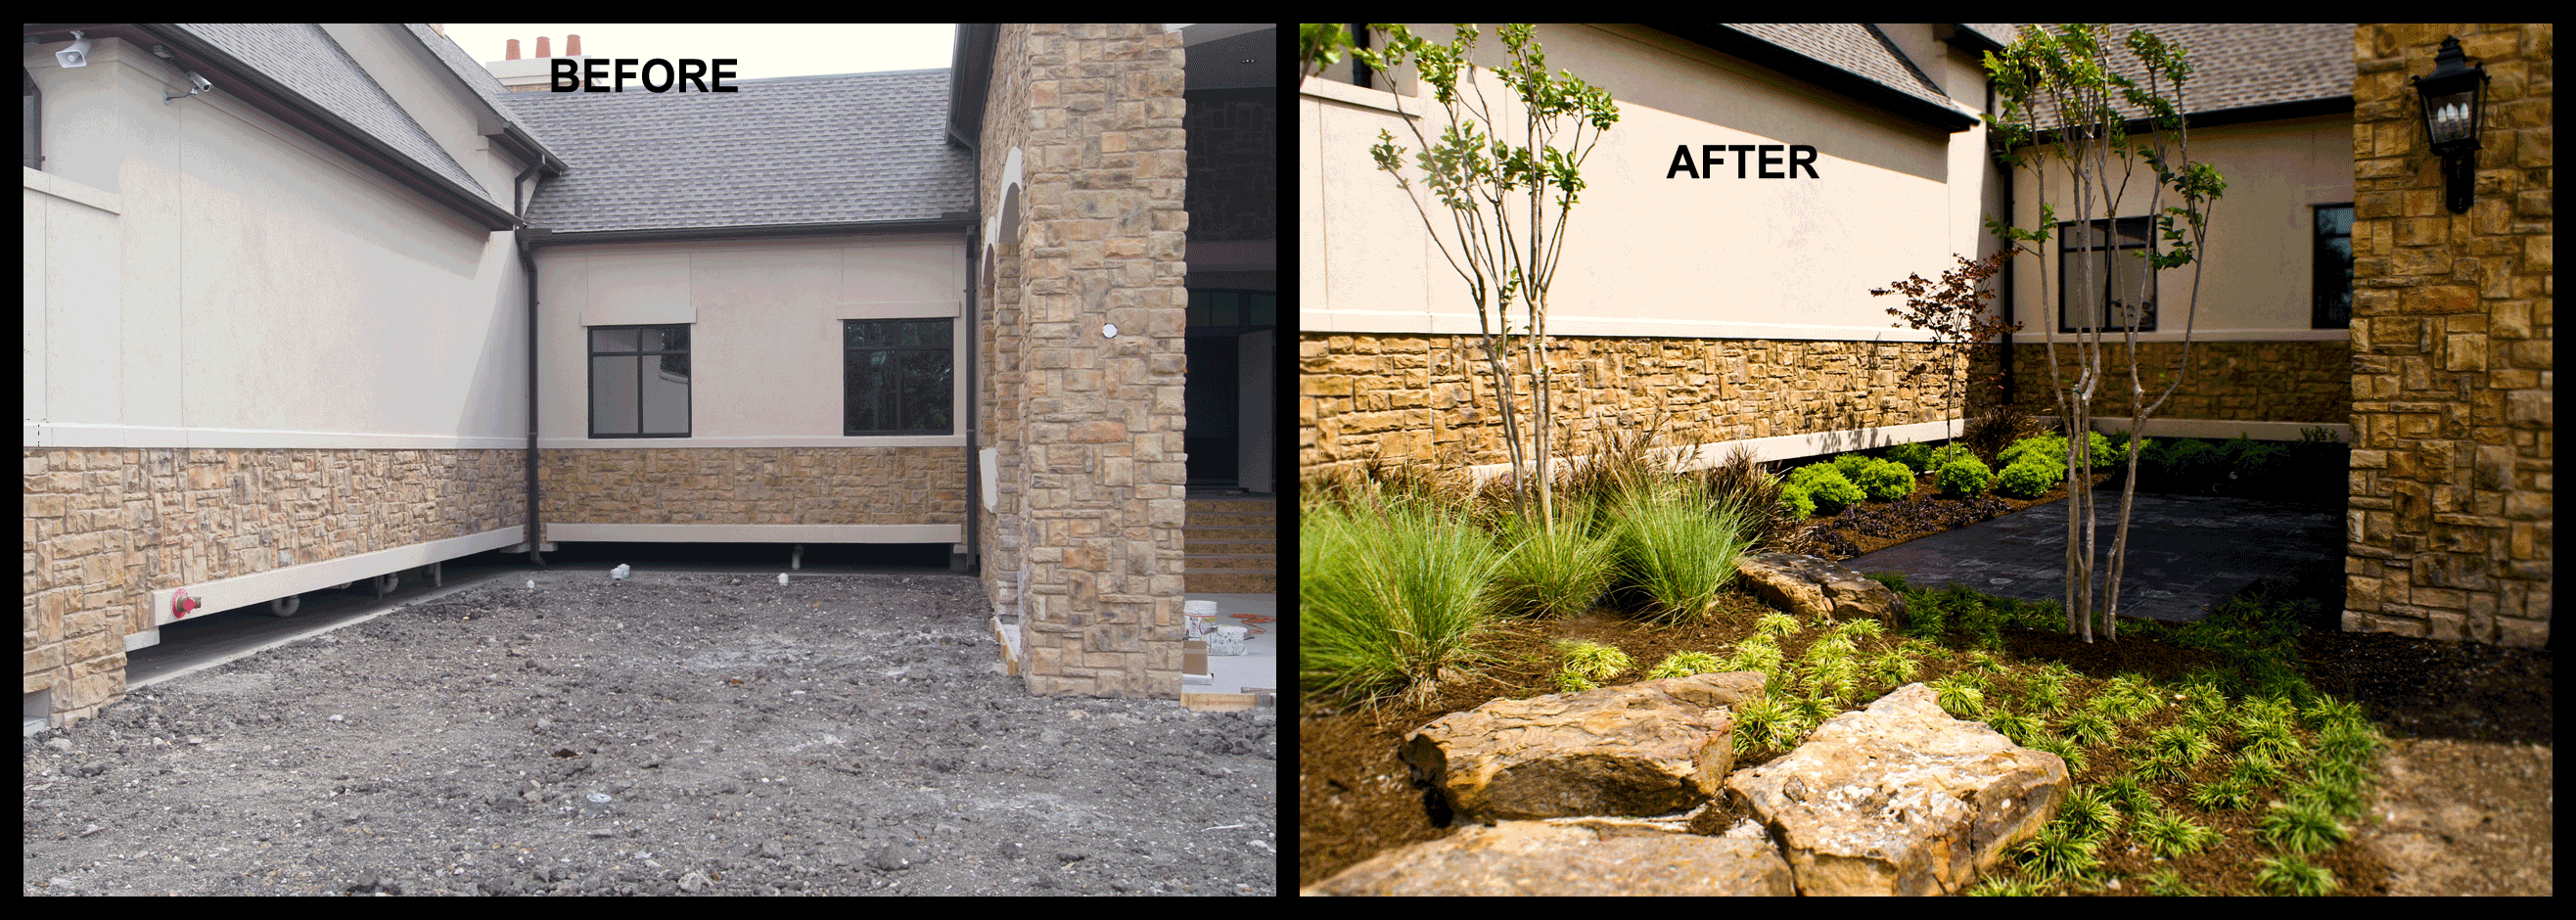 before after landscape architecture smelek design - Garden Design Before And After